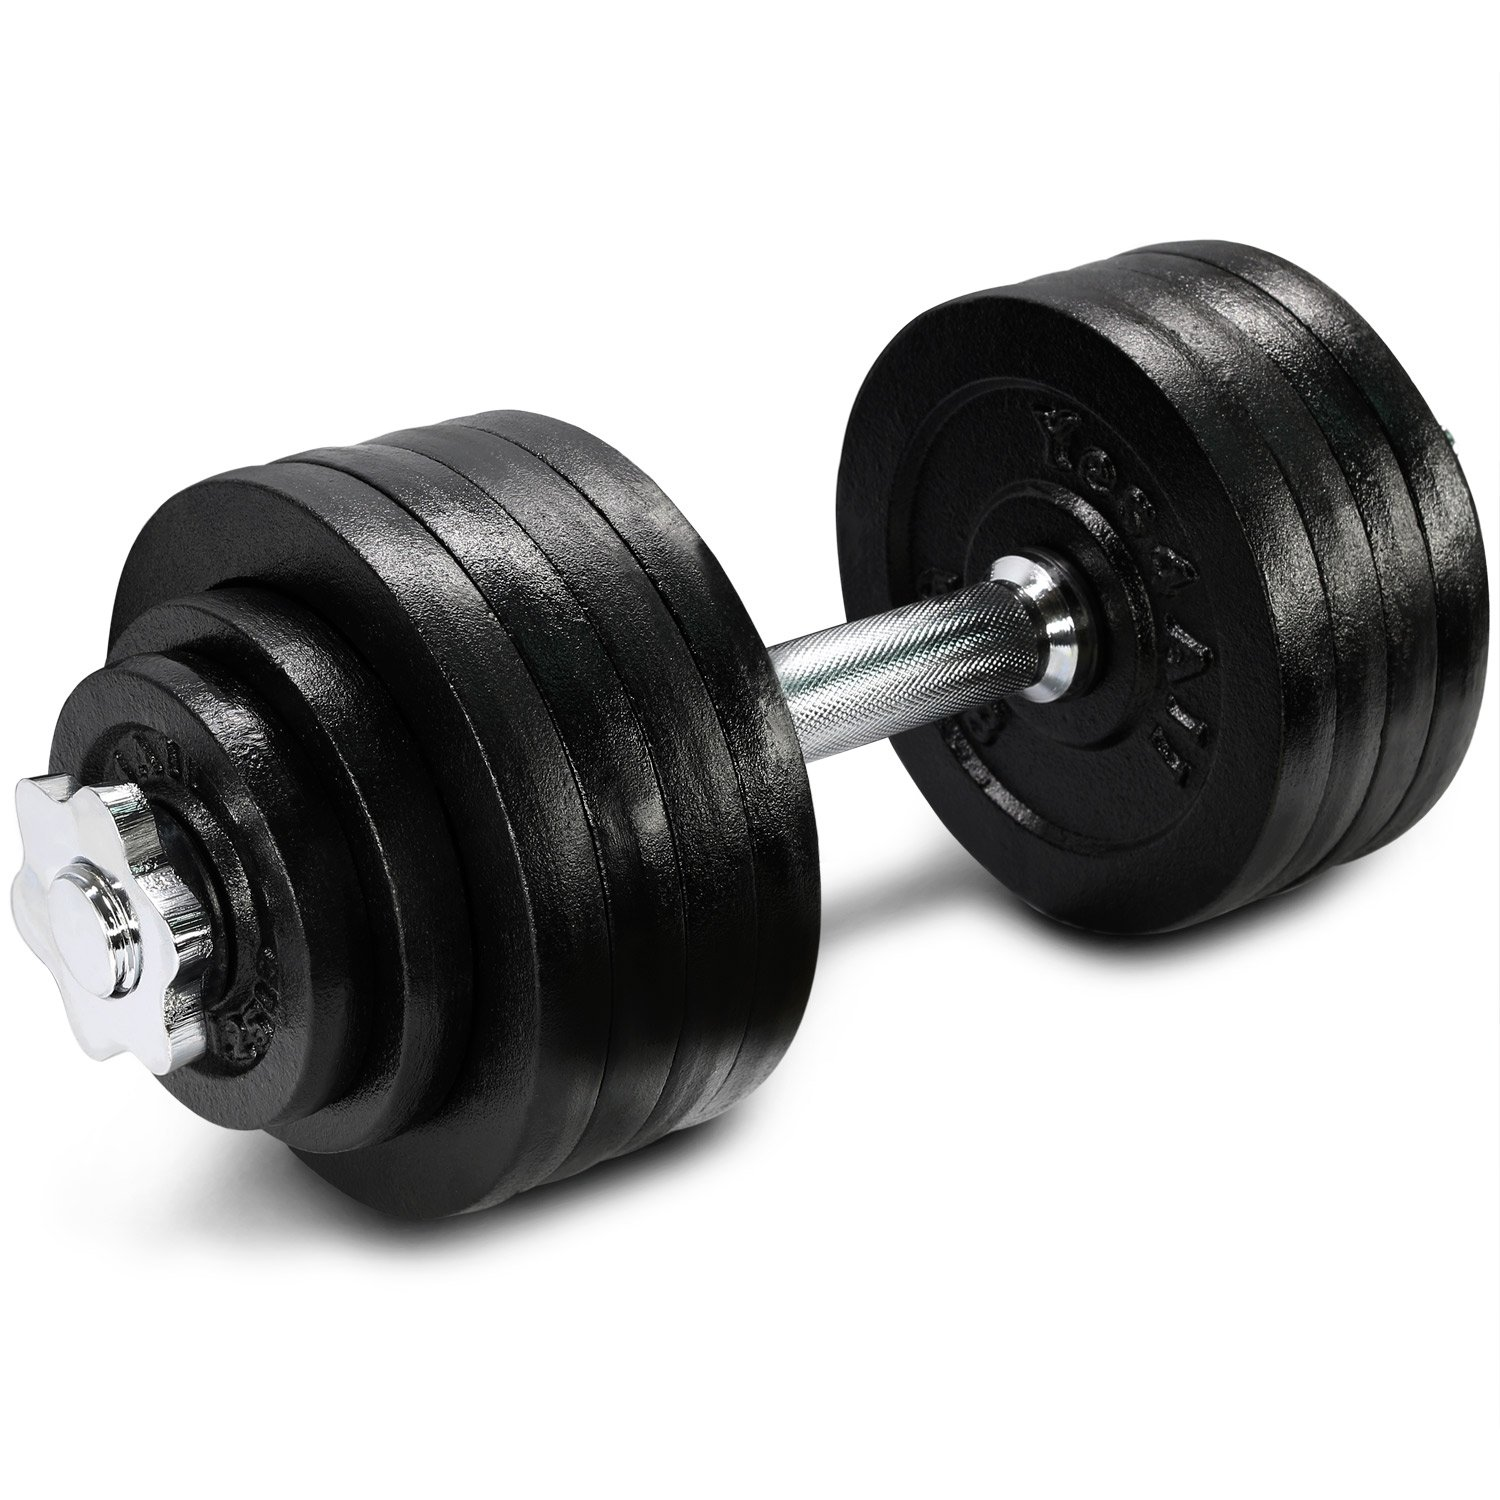 Yes4All Adjustable Dumbbells - 52.5 lb Dumbbell Weights (Single) by Yes4All (Image #1)